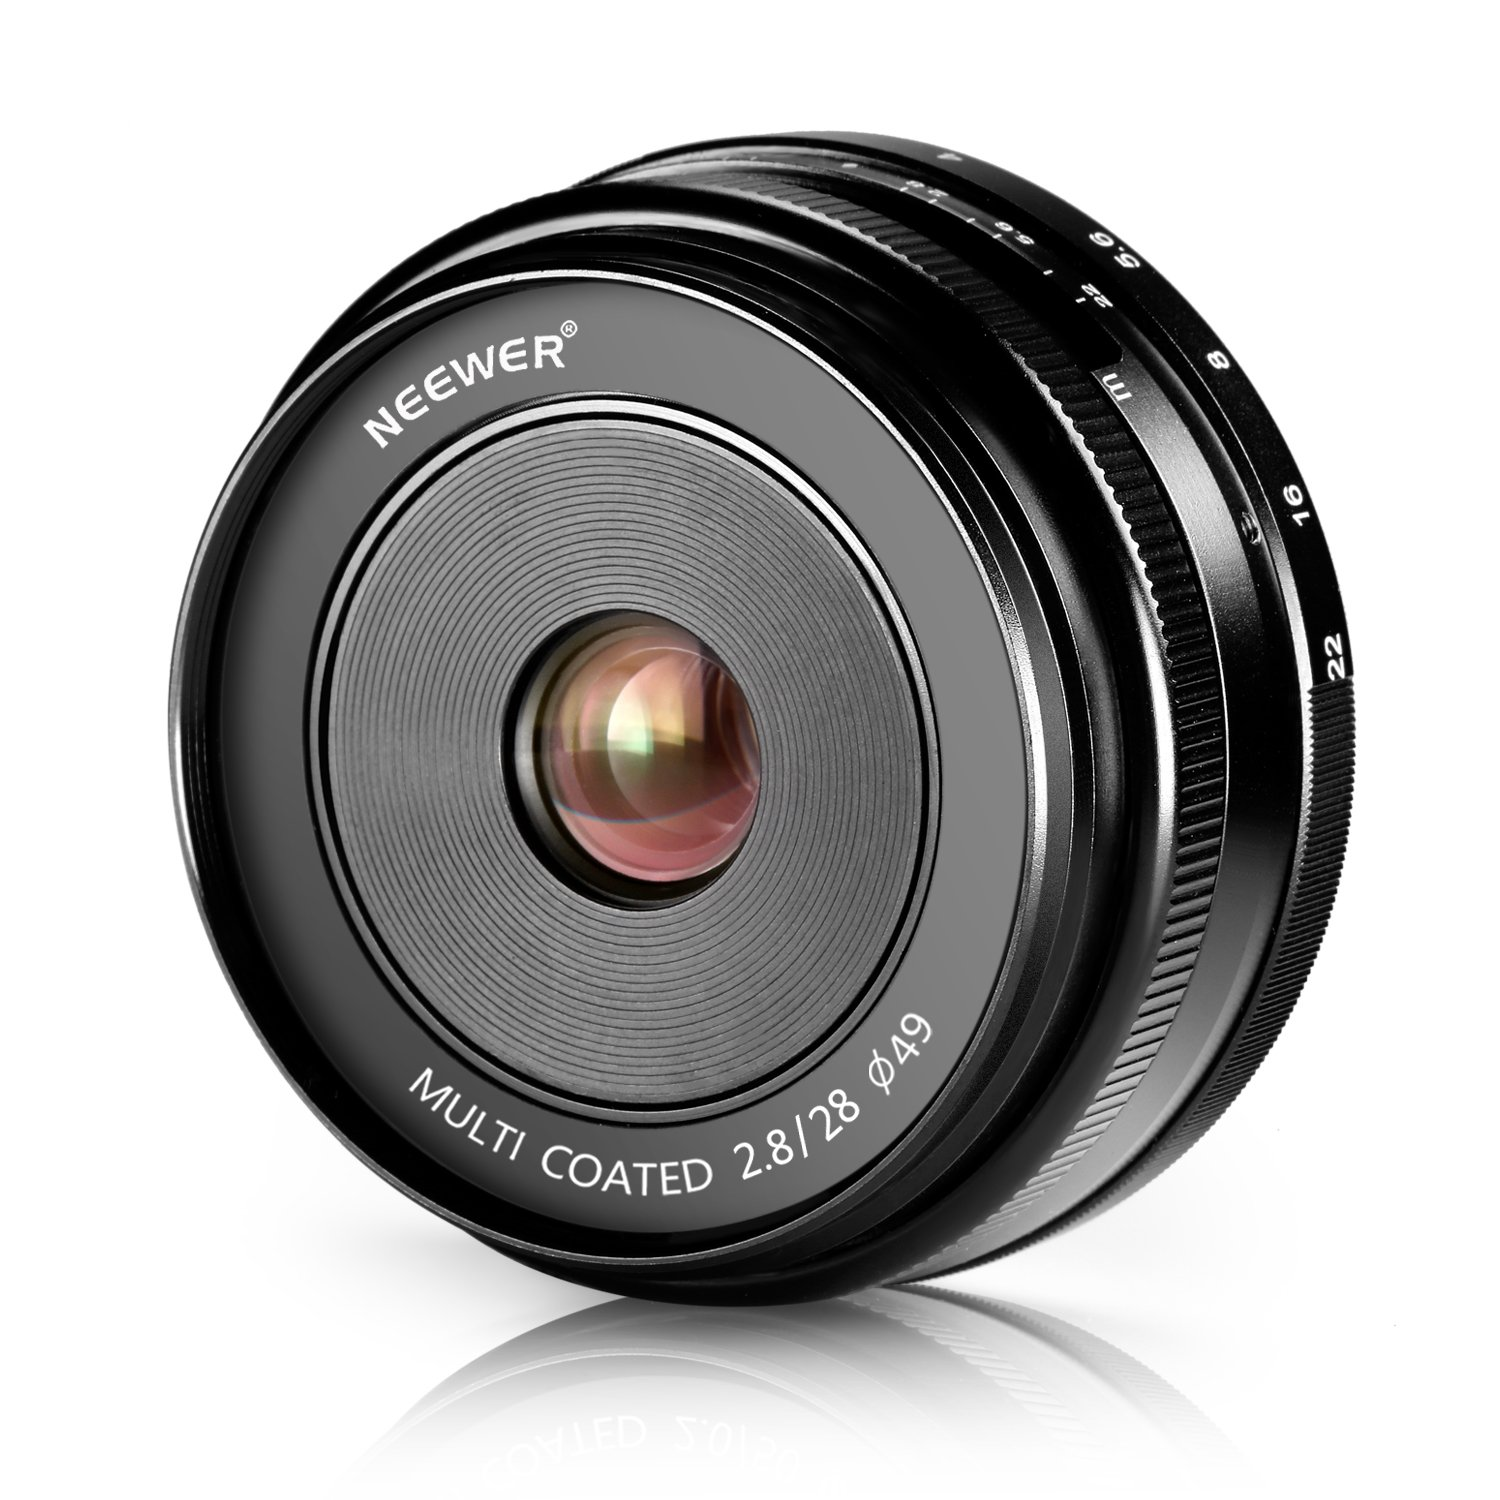 Neewer 28mm f/2.8 Manual Focus Prime Fixed Lens for Sony E-Mount Digital Cameras, Such as NEX3, 3N, 5, 5T, 5R, 6, 7, A5000, A5100, A6000, A6100 and A6300 (NW-E-28-2.8) by Neewer